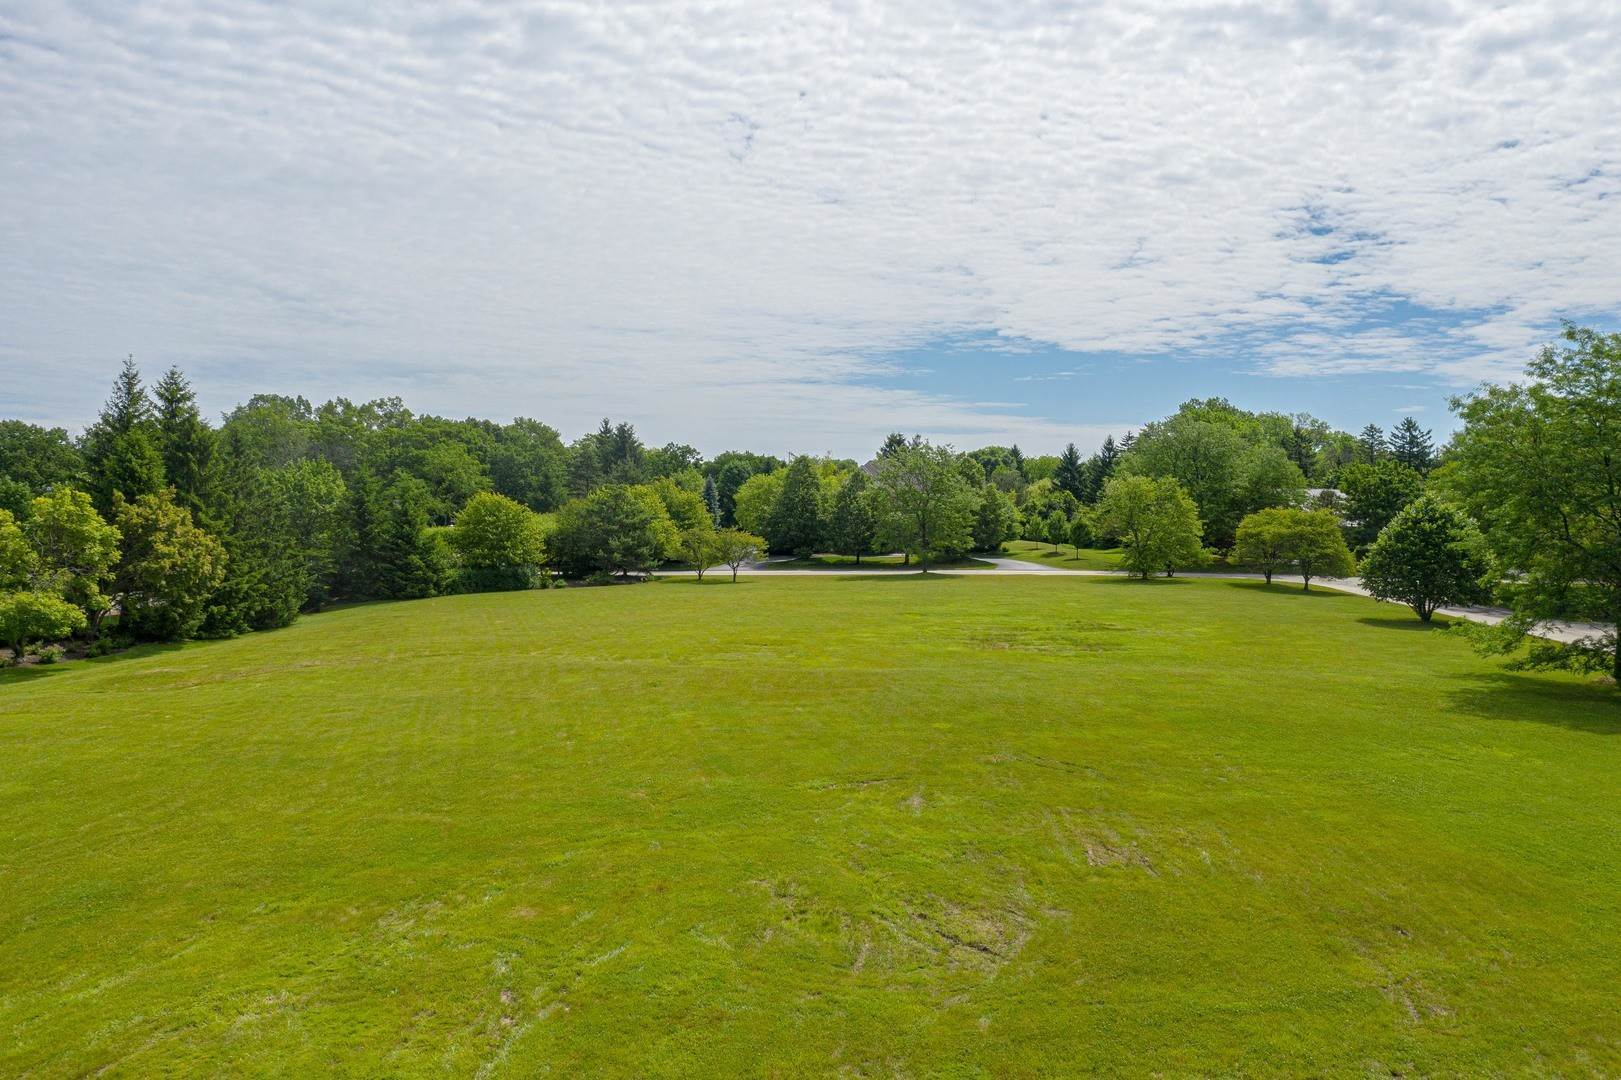 Land for Sale at 1602-16 Braeside Lane Northbrook, Illinois 60062 United States